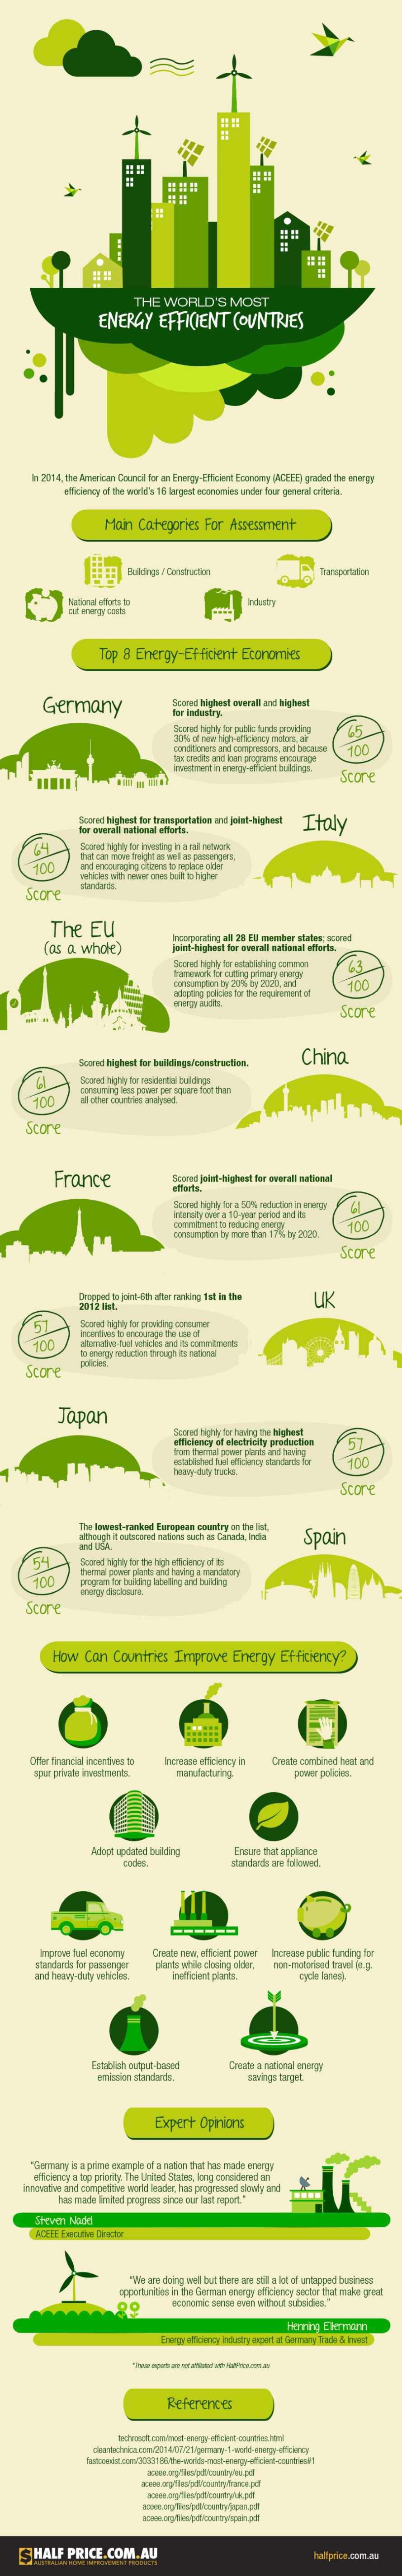 energy efficiency, energy efficient countries, rating energy efficiency, most efficient countries, green countries, greenest countries, what are the greenest countries, eco friendly countries, reader submissions, infographic, country energy ratings, solar power, wind power, coal power